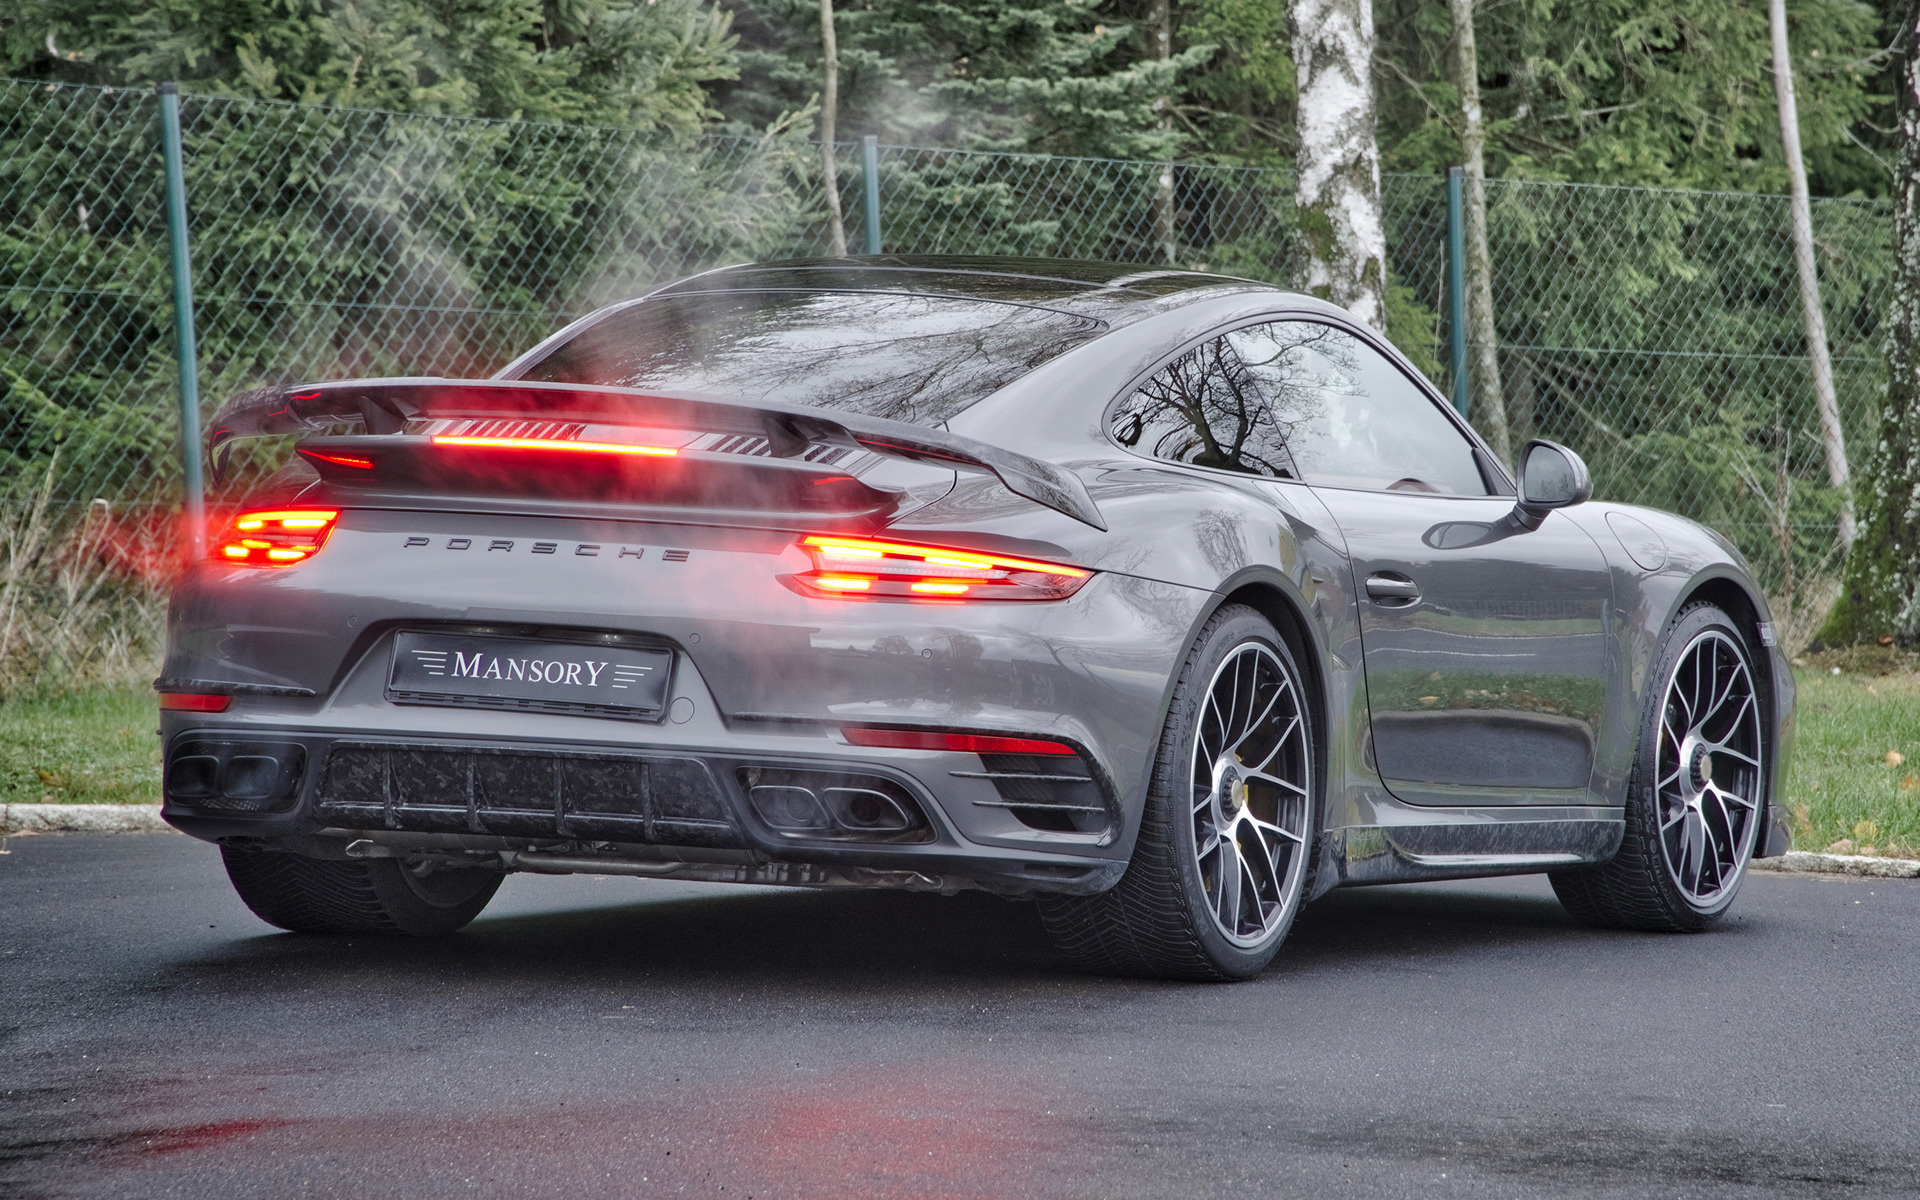 2018 Porsche 911 Turbo S By Mansory Wallpapers And HD